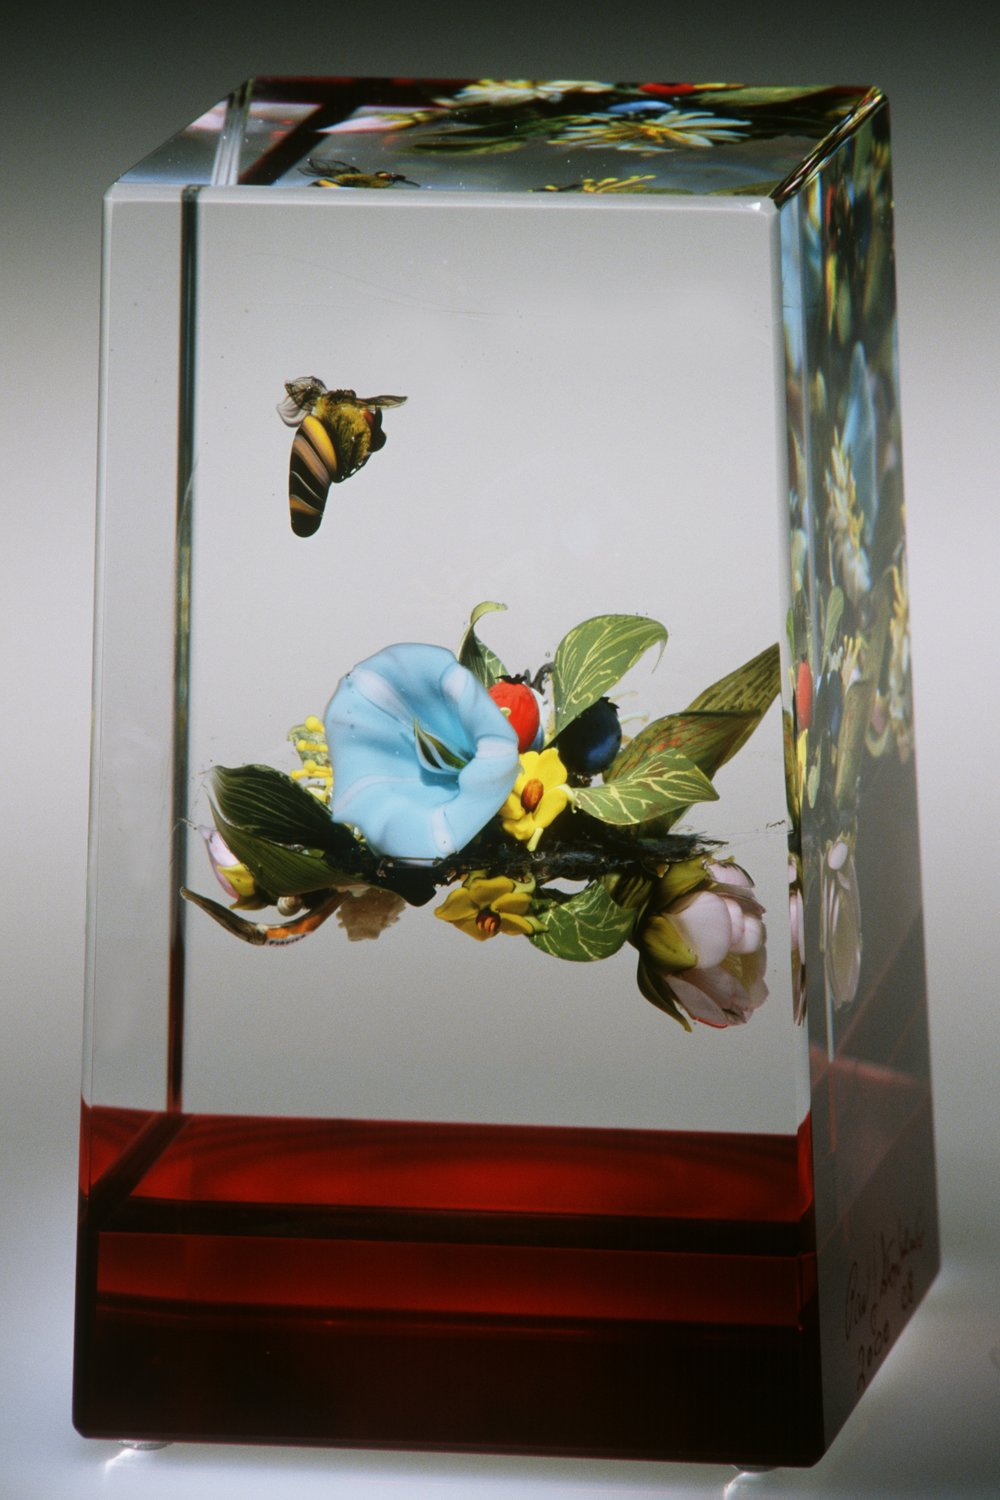 2002; Morning Glory Banded Cube with Honeybee; H. 5.0 x W. 2.50 x D. 2.25 inches